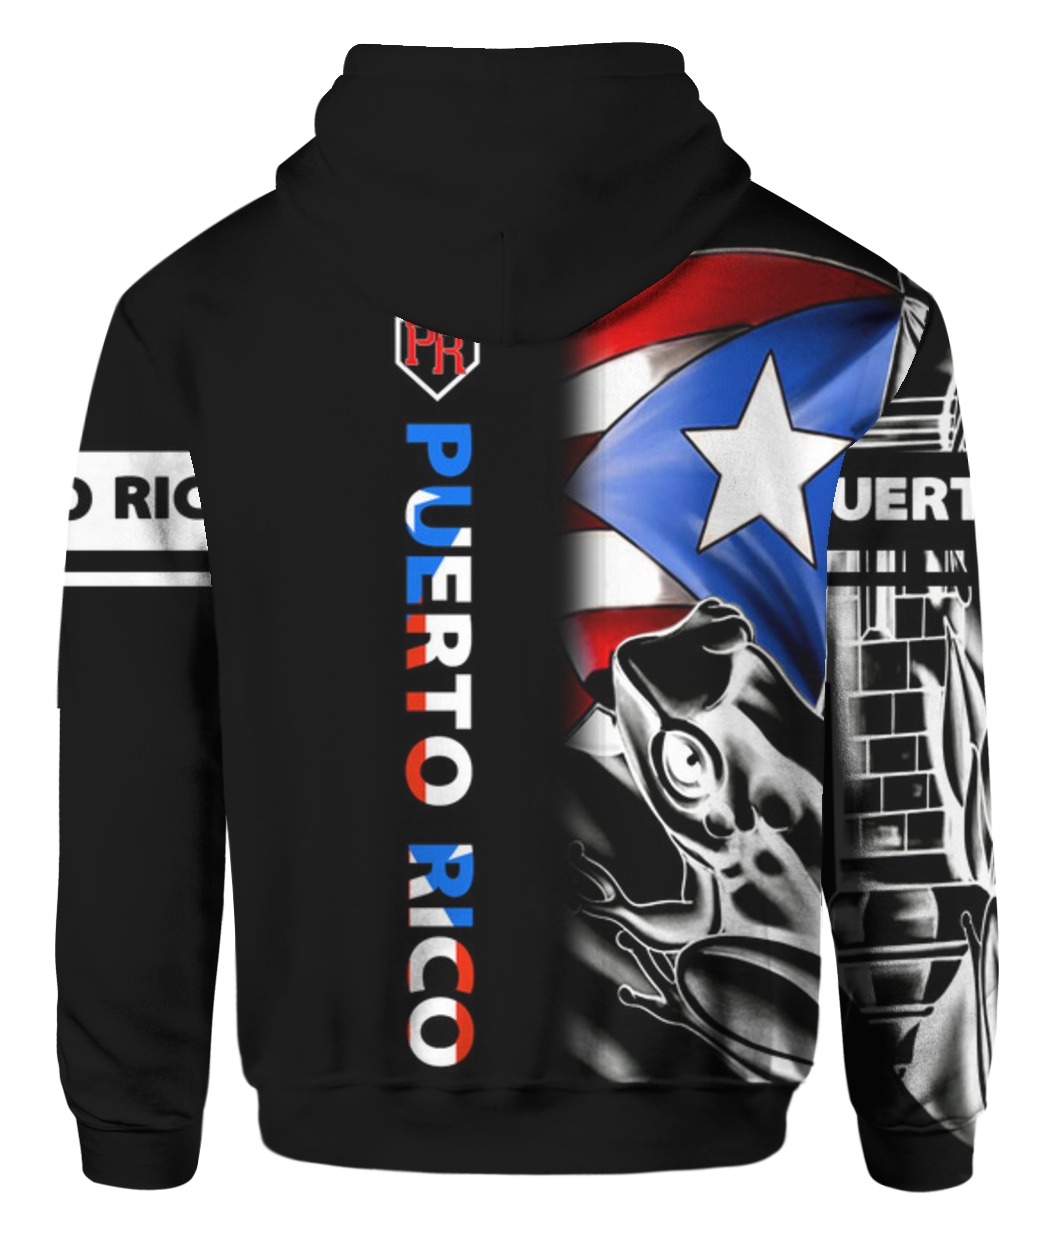 Puerto Rico Baseball Team Flag 3D All Over Printed Hoodie and Bomber - Saleoff 2512199